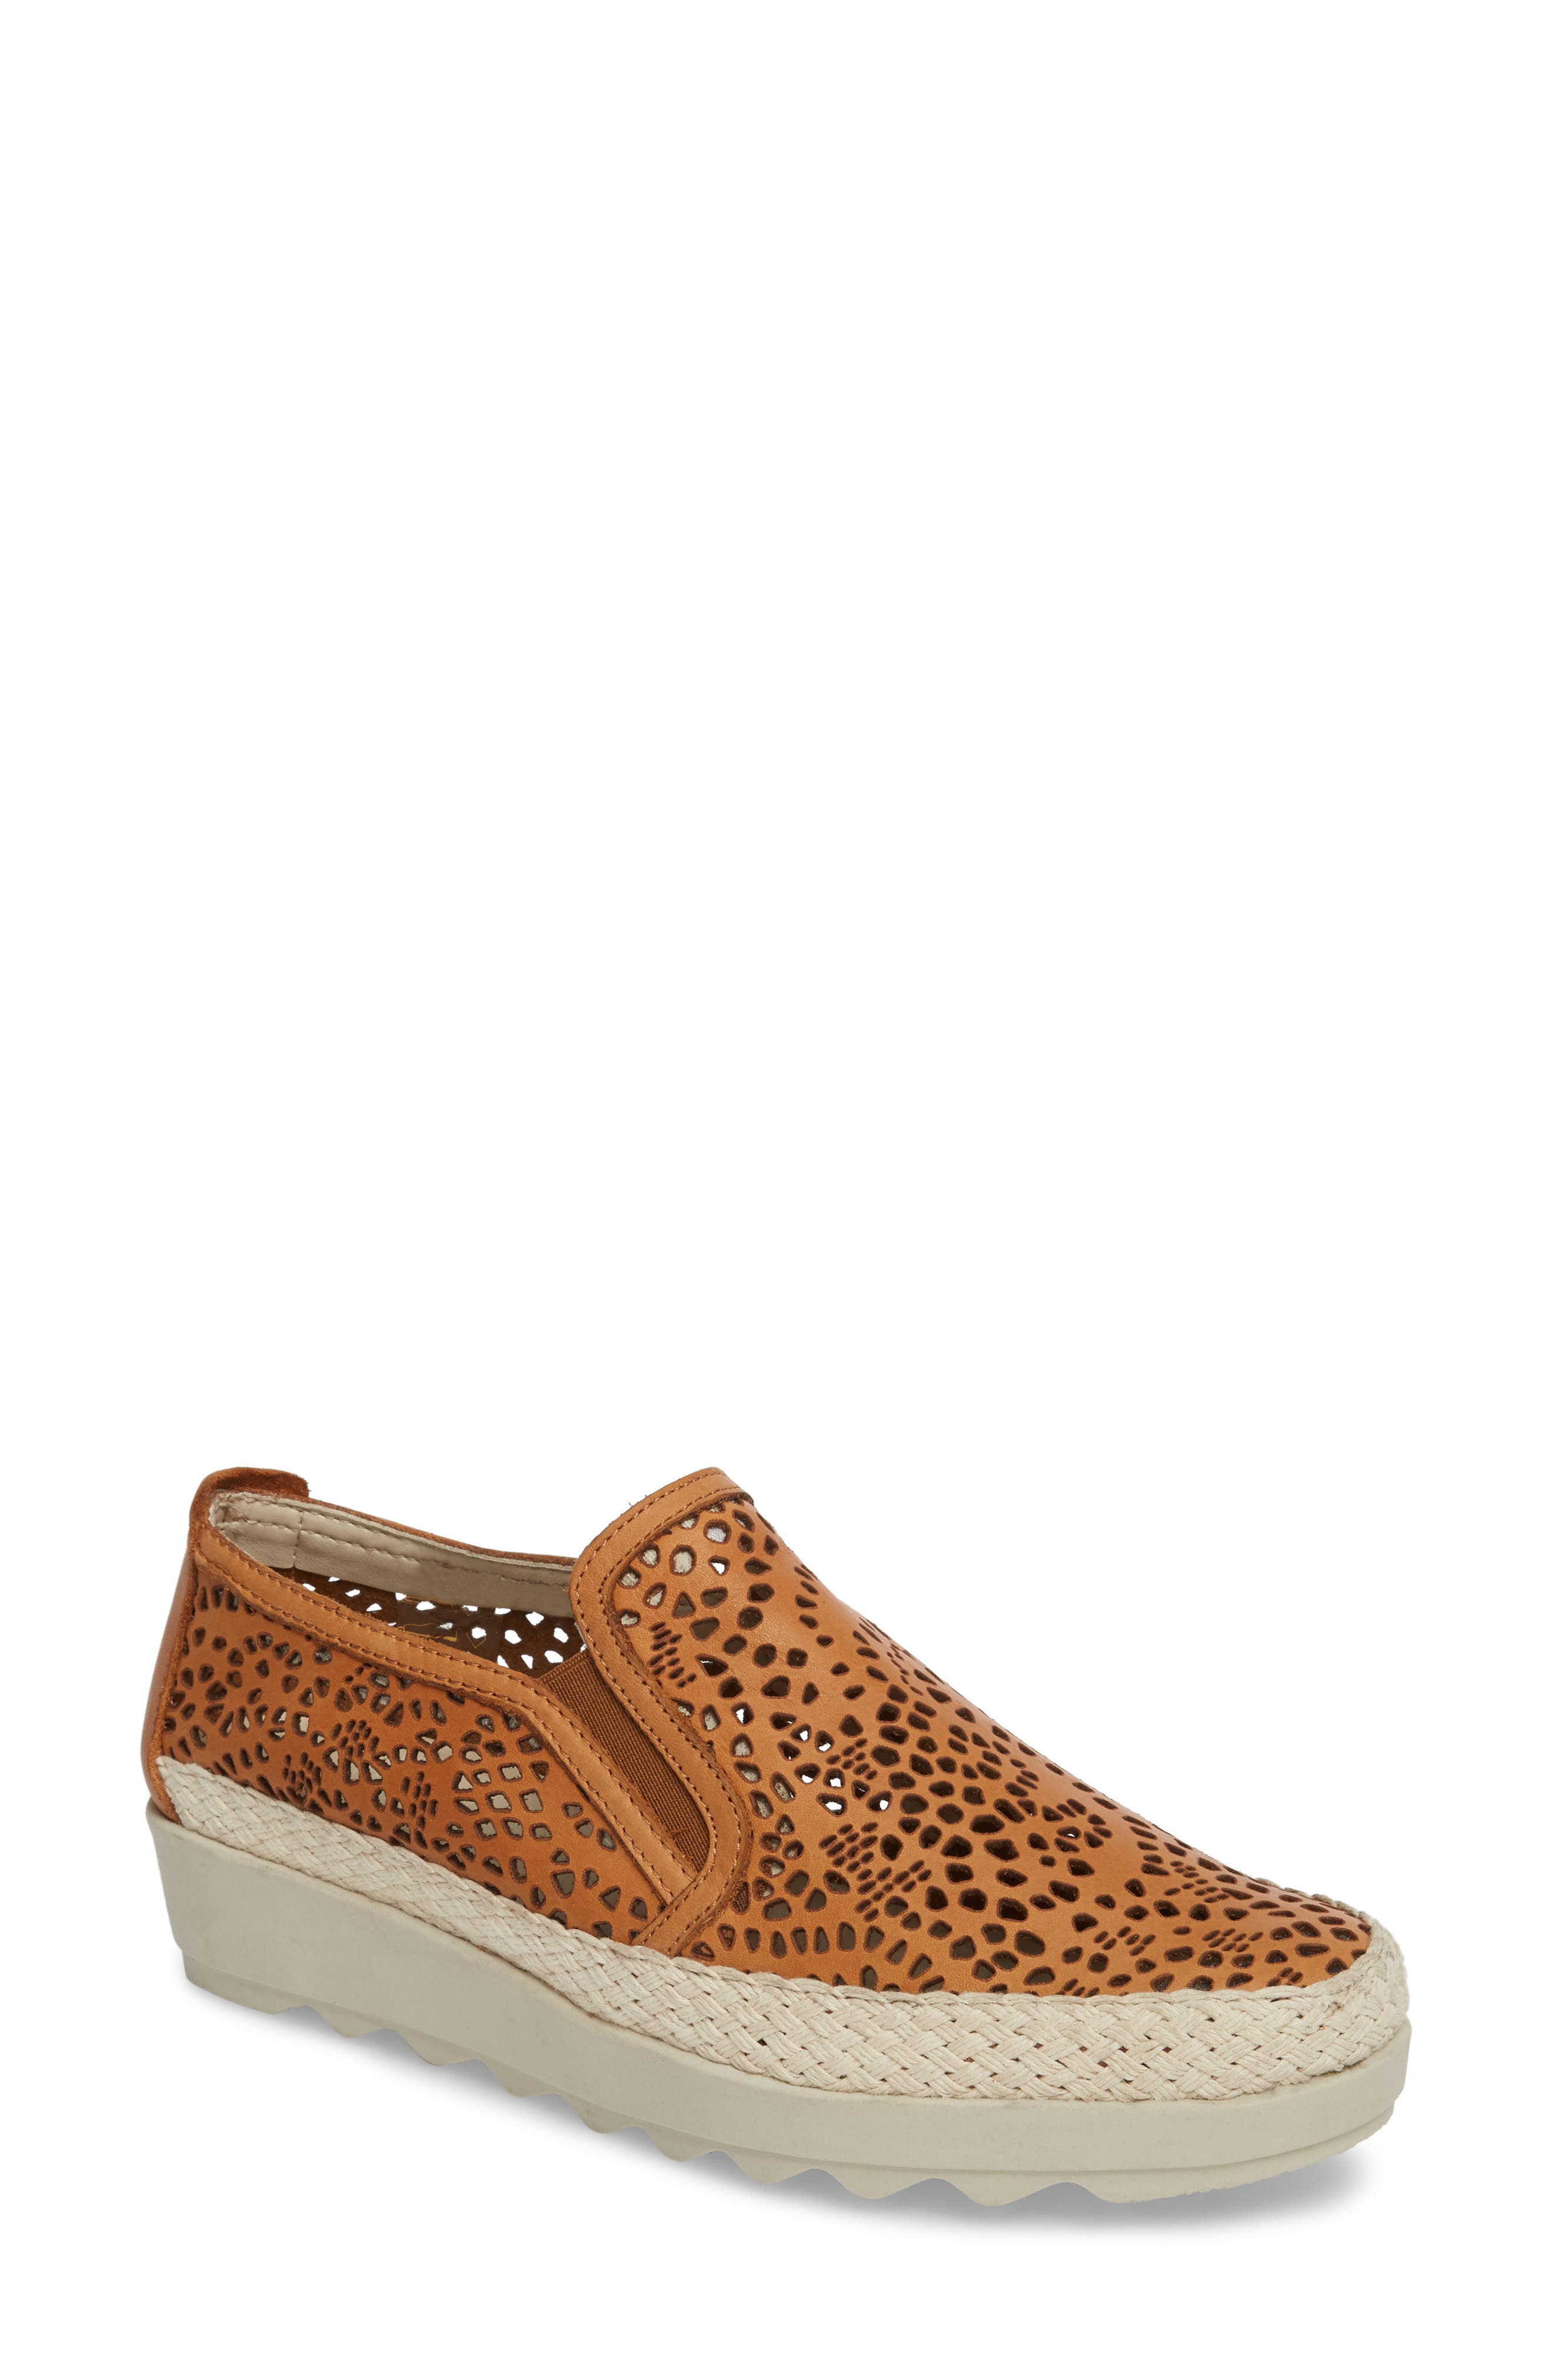 The Flexx Call Me Perforated Slip-On Sneaker- Brown